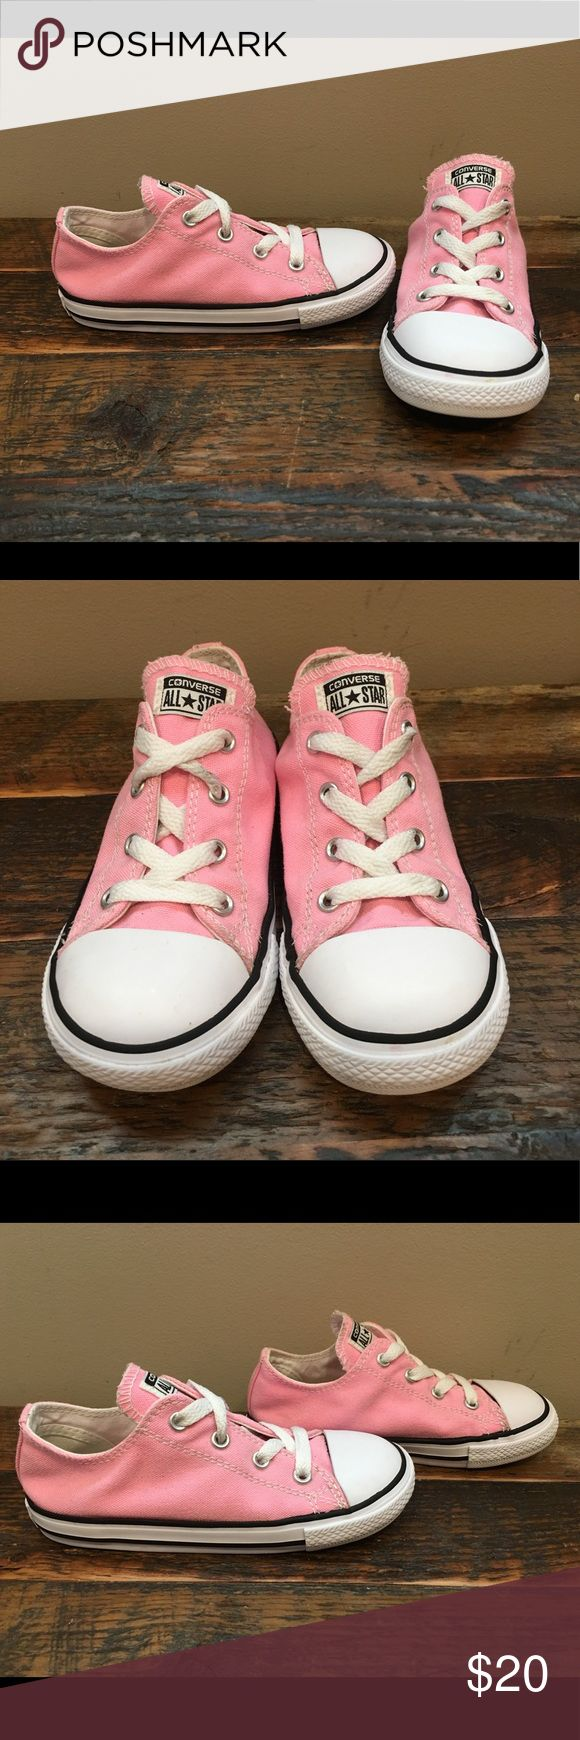 Converse Pink sz 10C Excellent condition, toddler size 10. Just have very small mark on inside of shoe, shown in last pic.  Please check out my closet for more awesome kids items! Converse Shoes